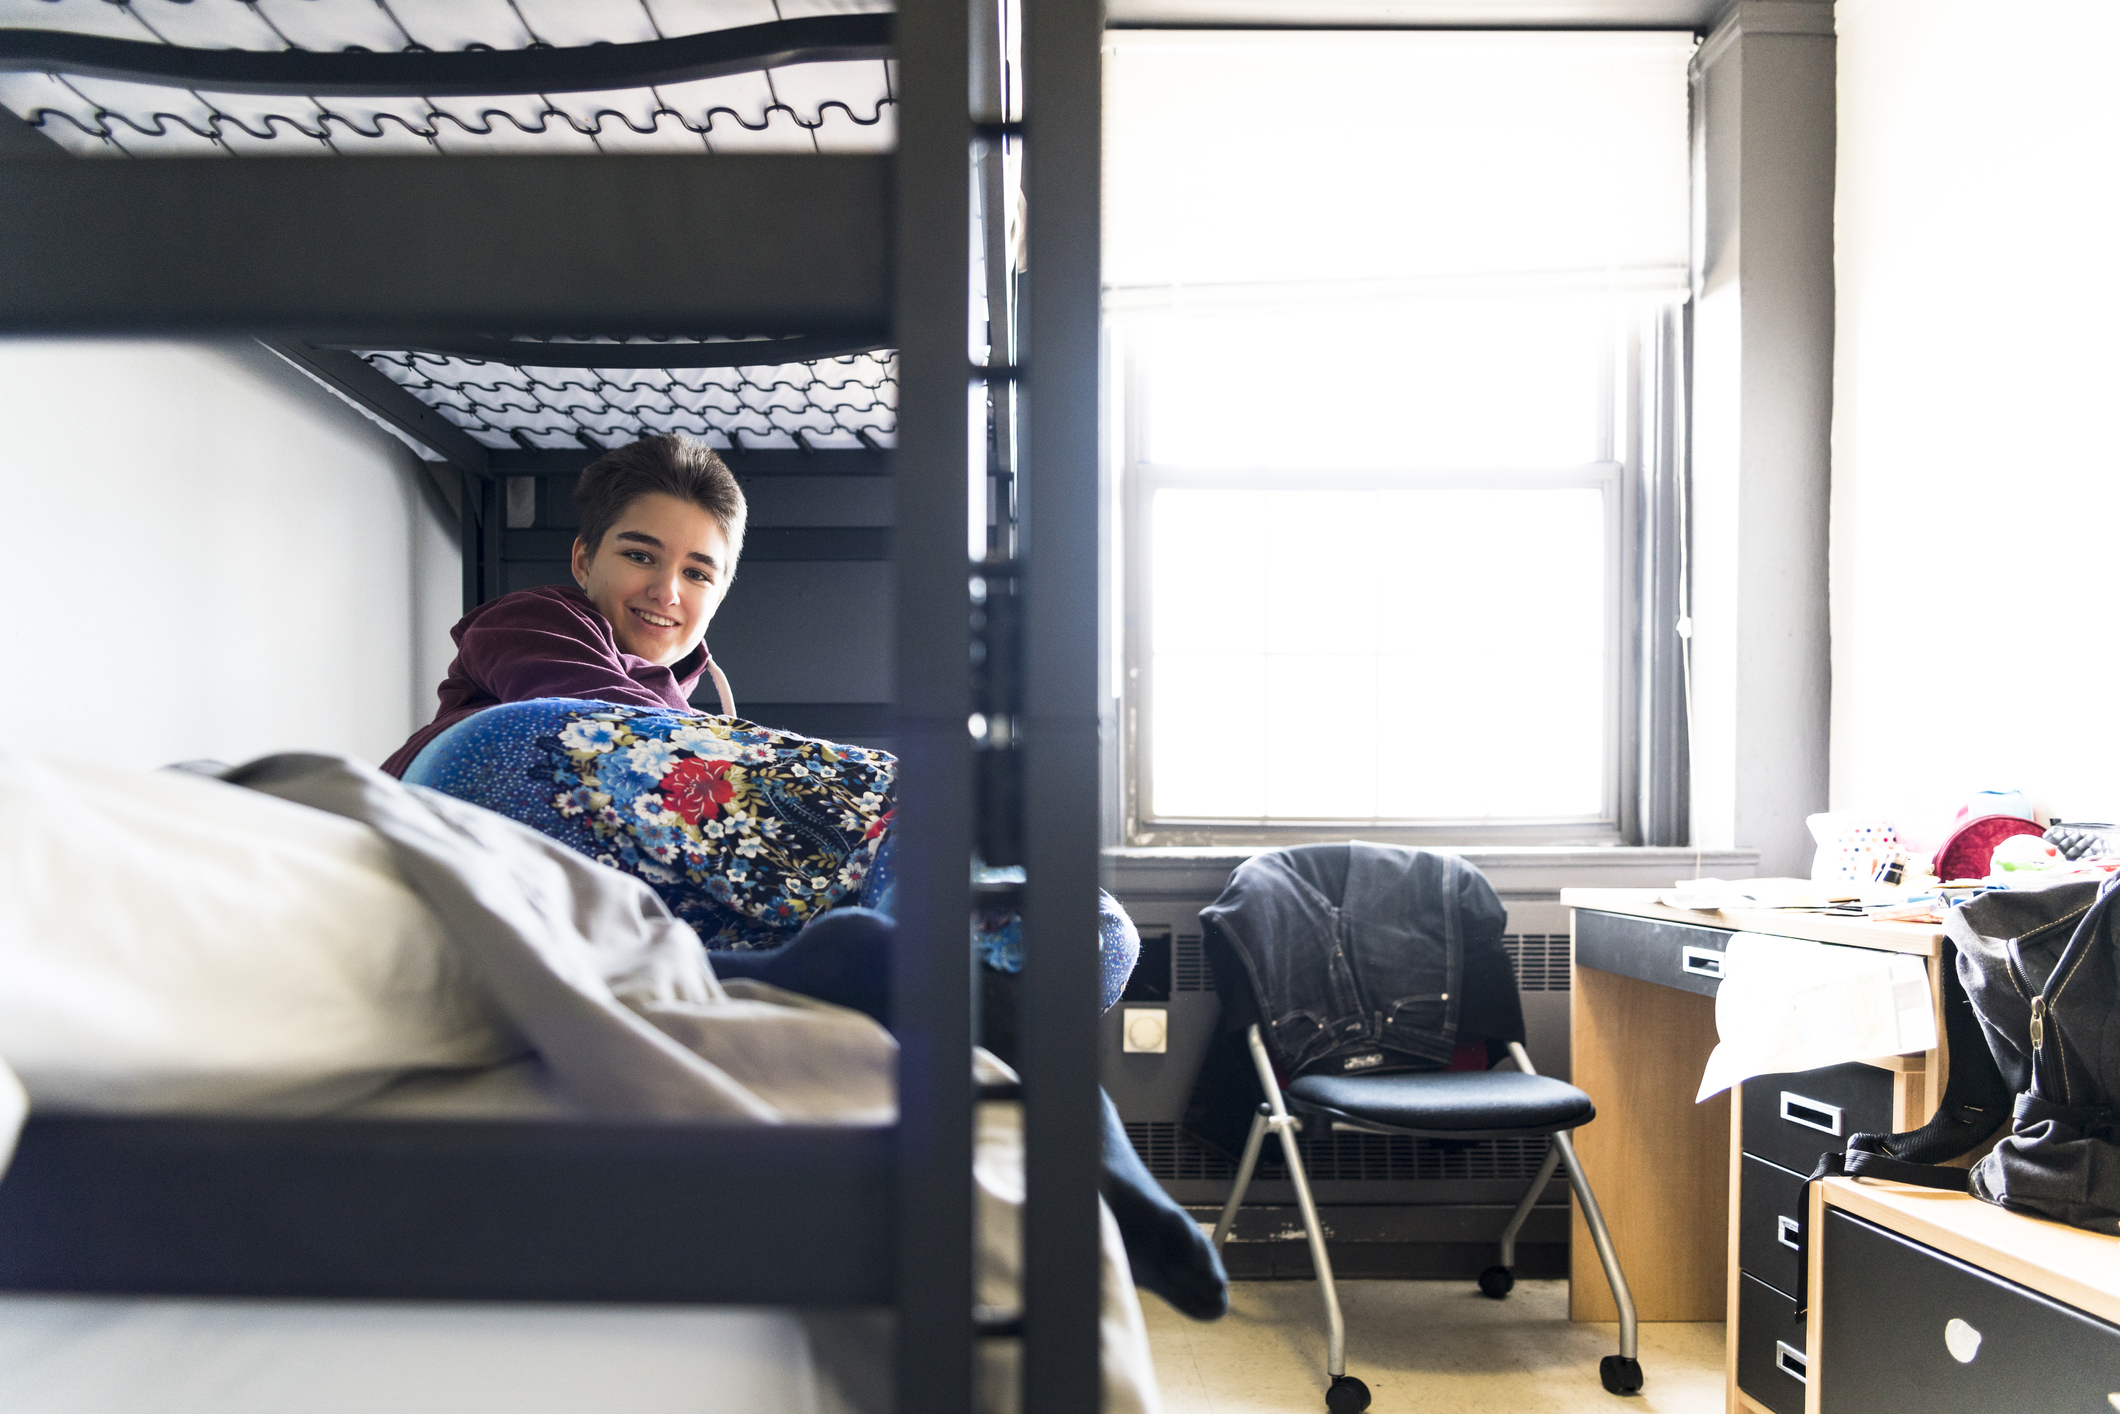 Learn more about preventing illness in college dorms